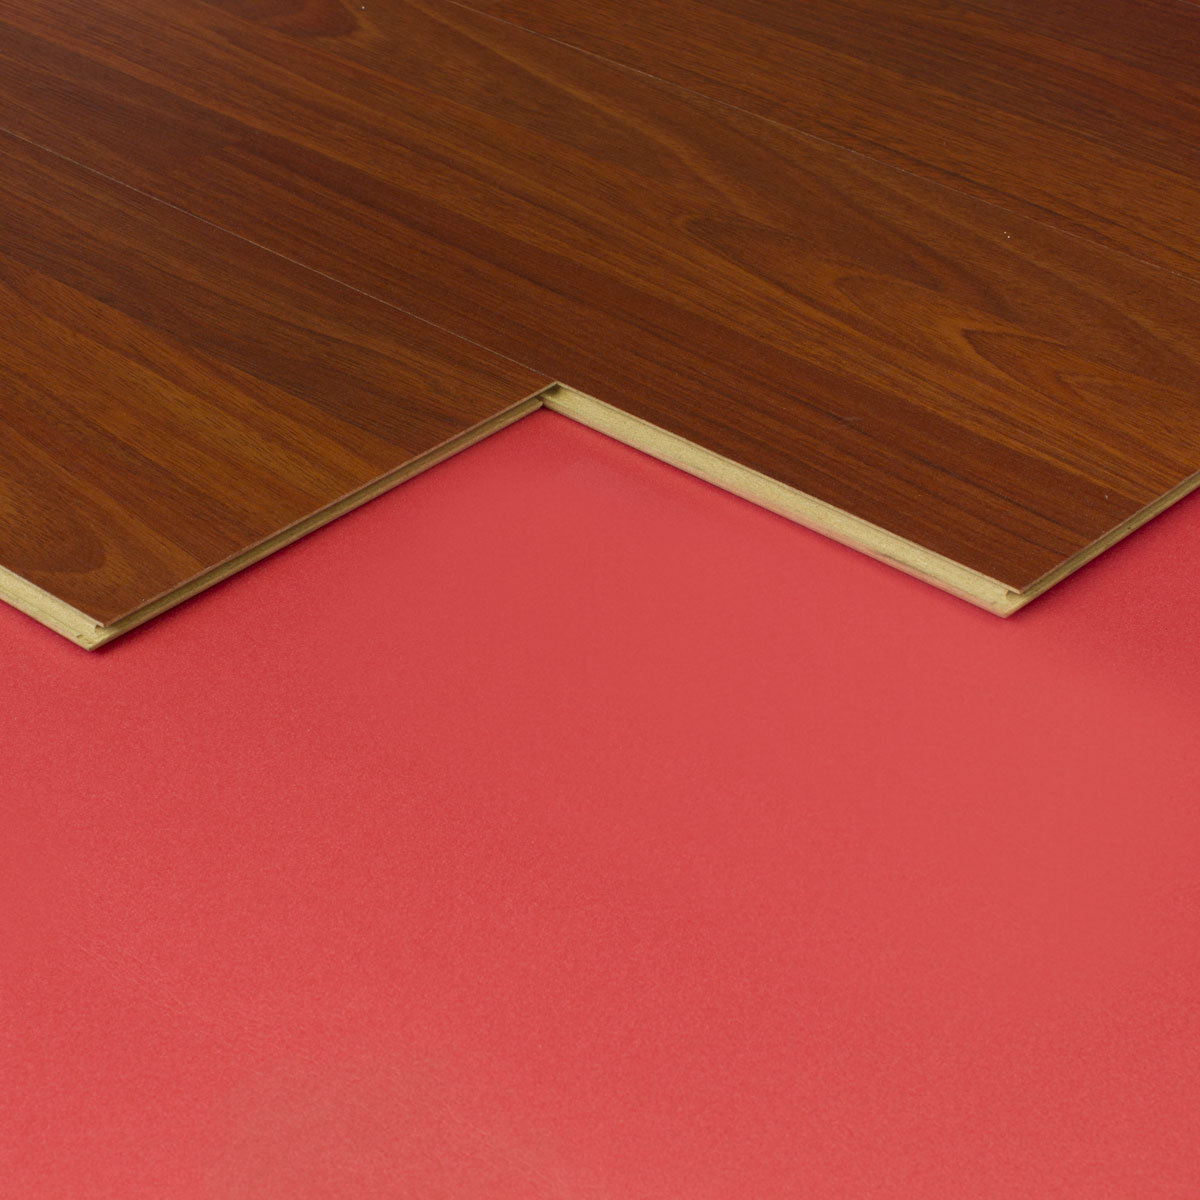 3 in 1 UNDERLAYMENT Laminate Foam 32mm 200 sqft Red  eBay